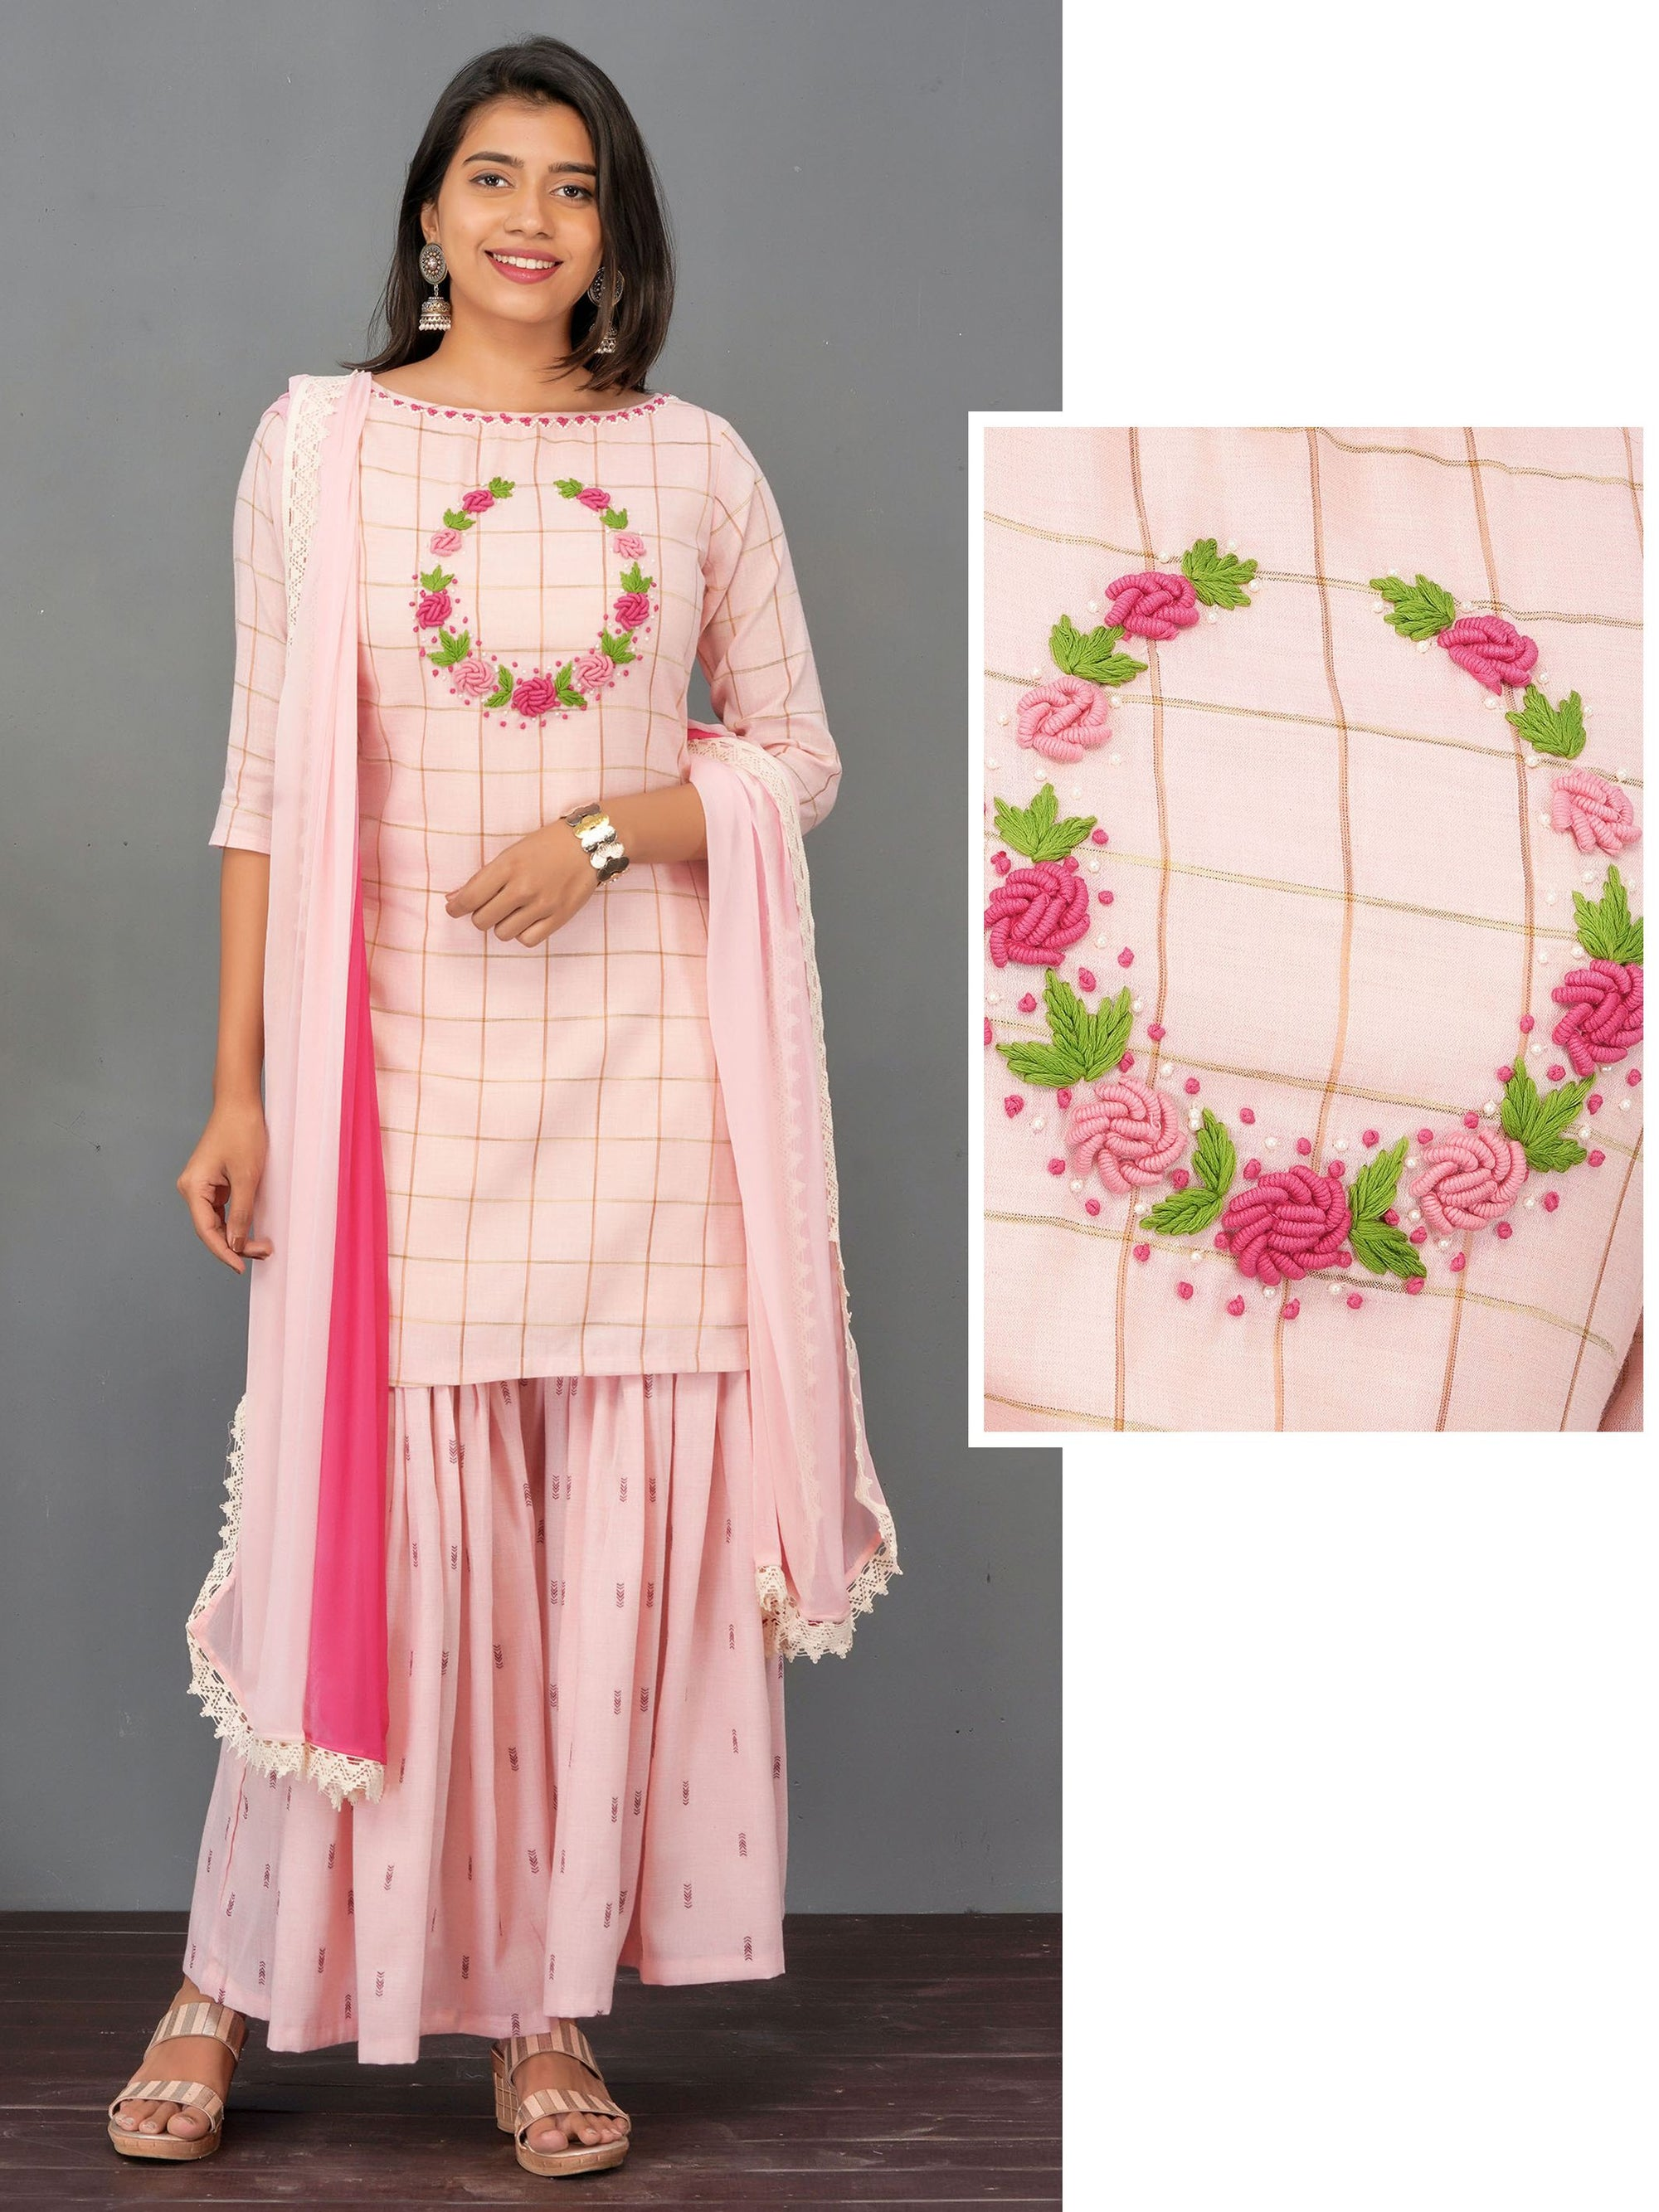 Bullion Knot Wreath Embroidered Kurti, Sharara & Dupatta Set – Baby Pink